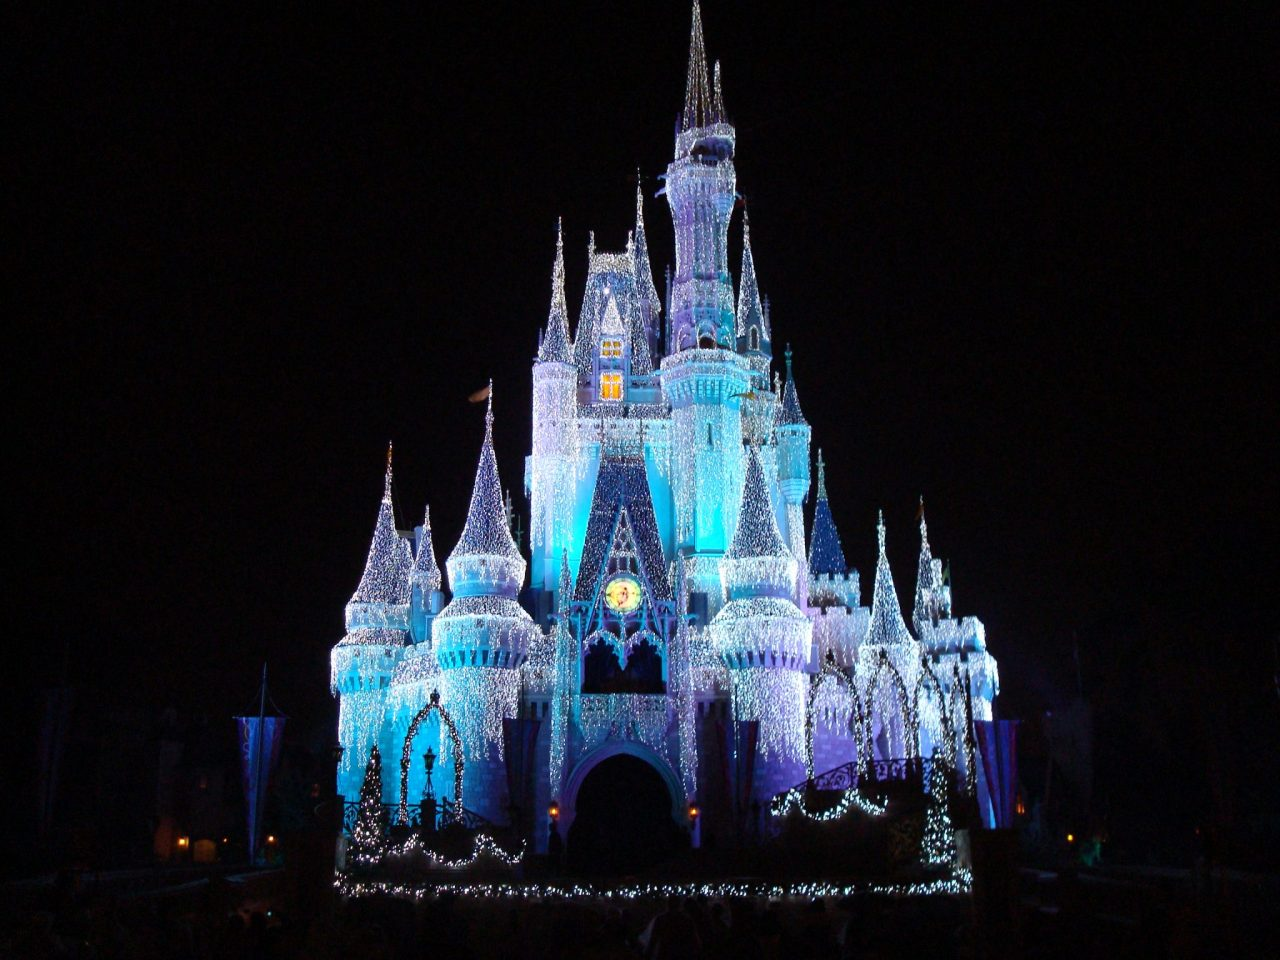 The 10 Best Apps to Help You Maximize the Disney Magic